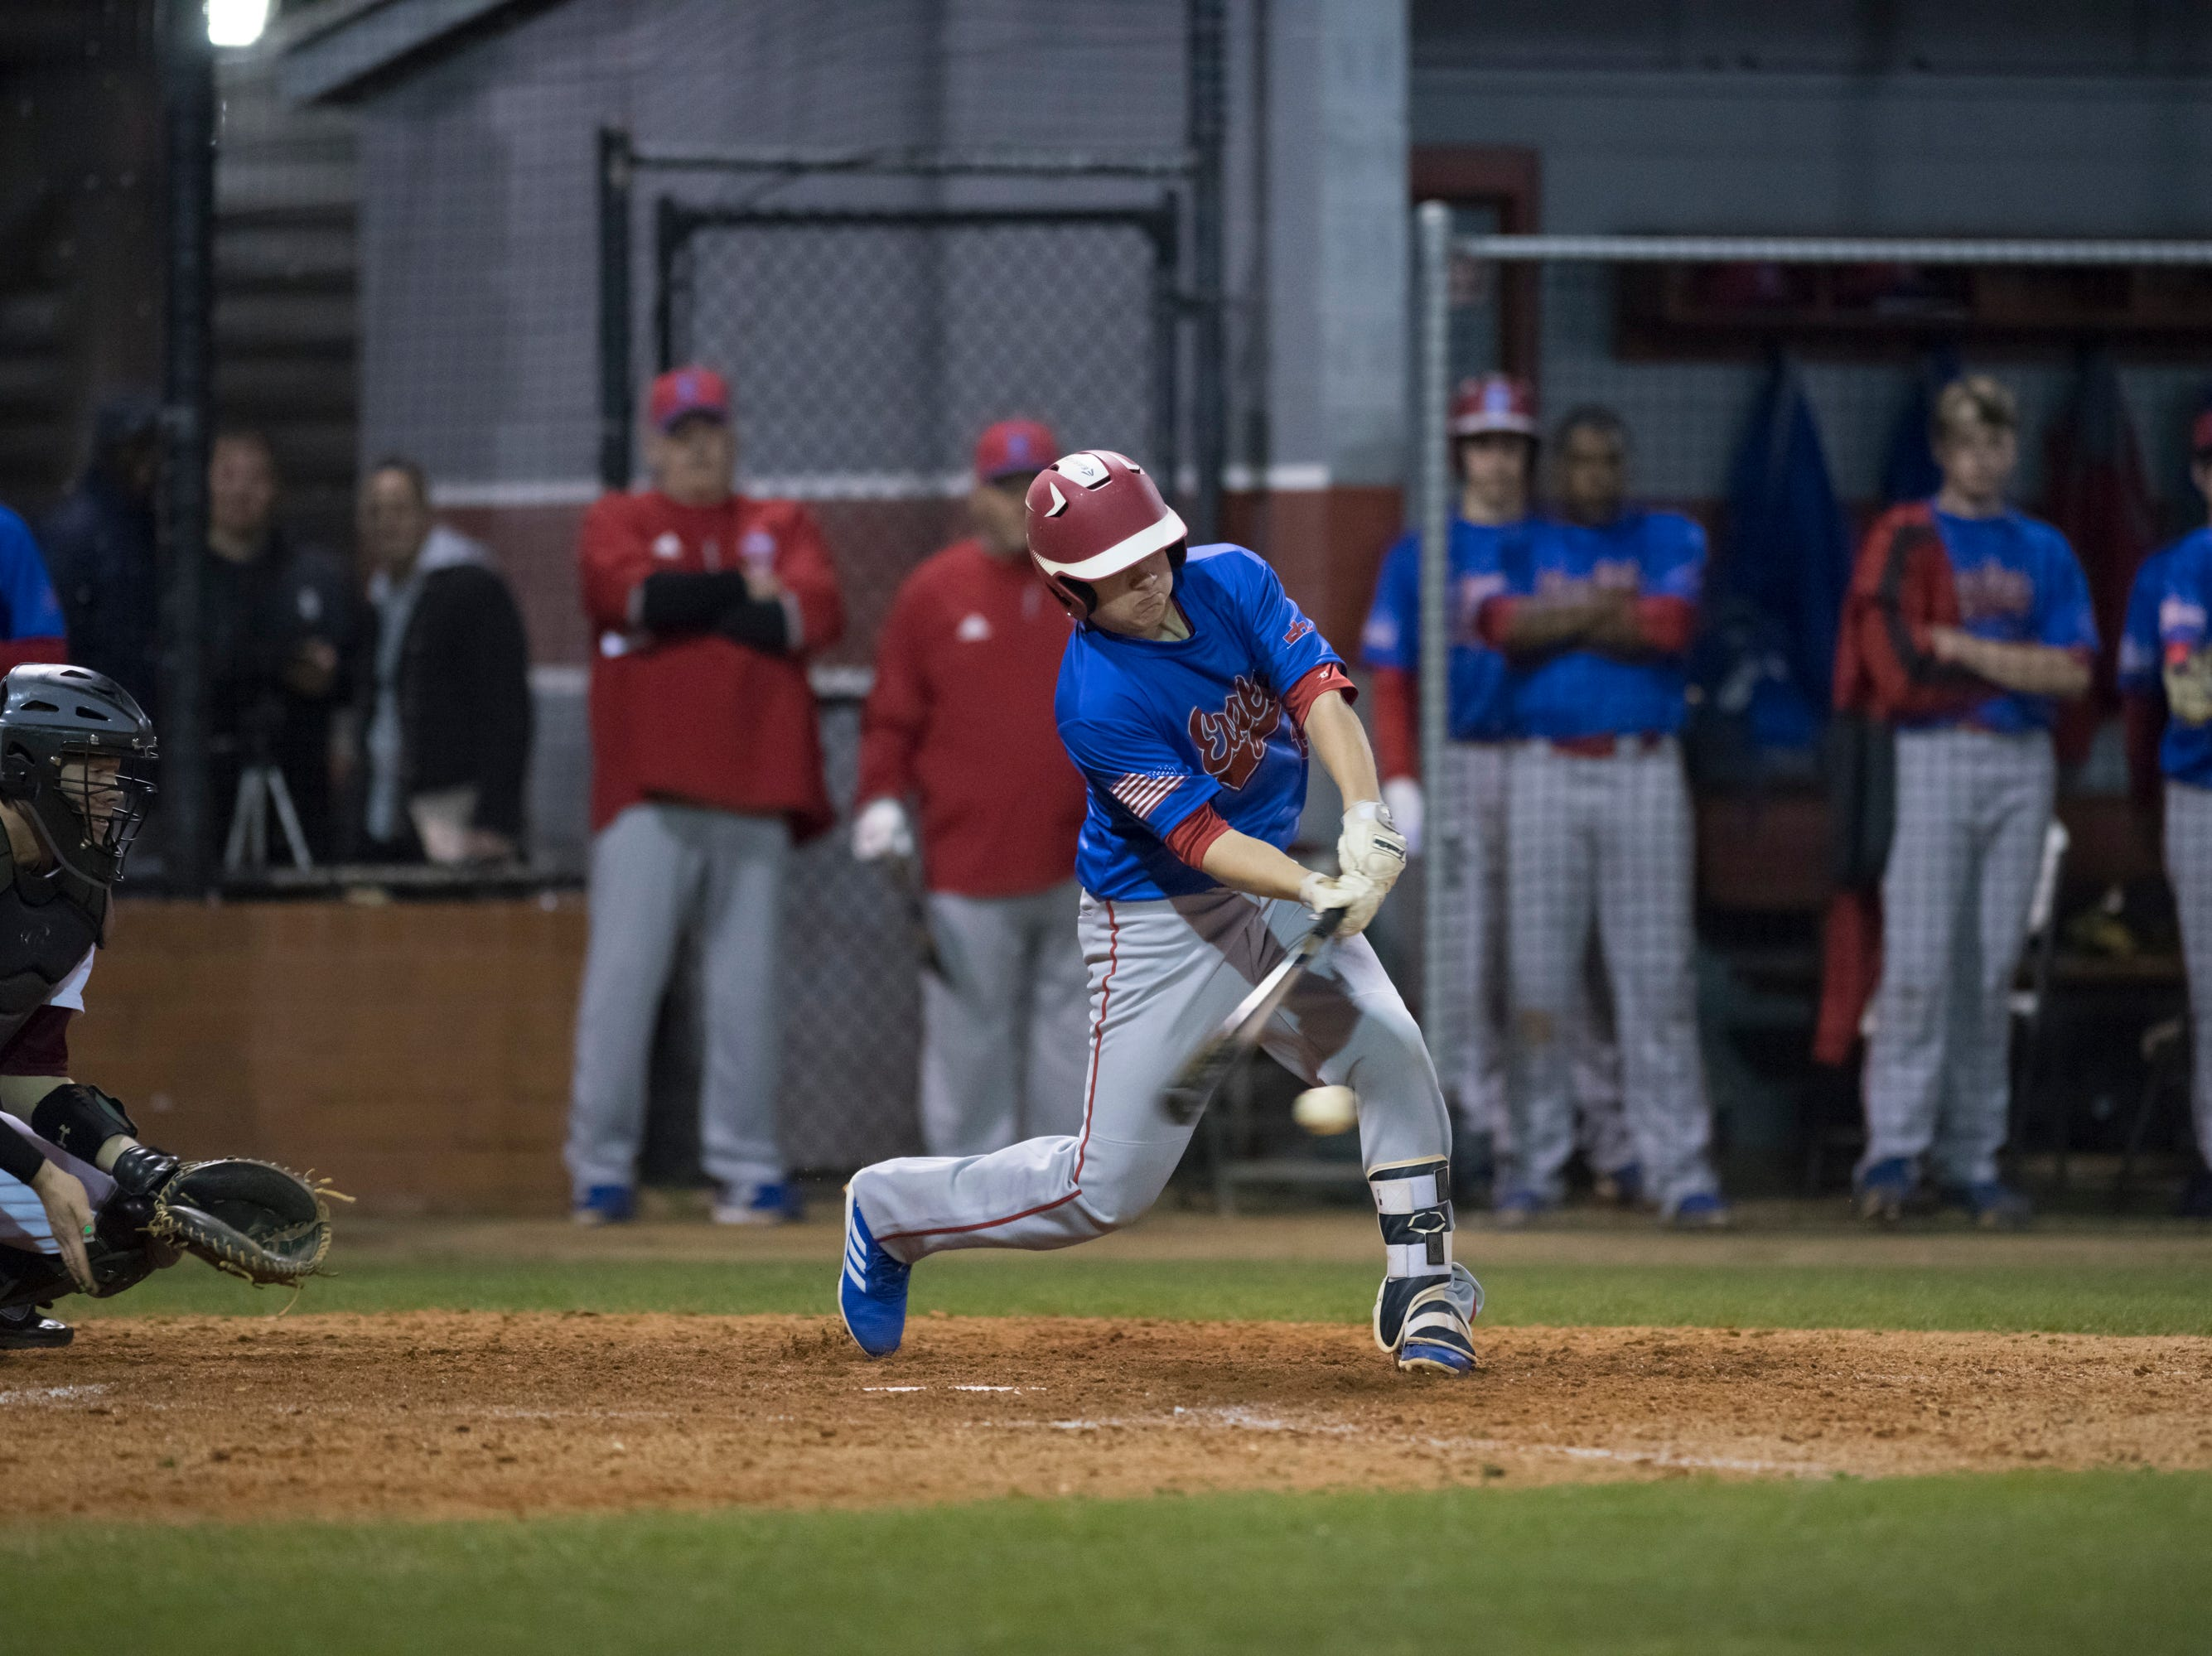 Bryce Alderman (16) bats during the Pine Forest vs Tate baseball game at Tate High School on Thursday, March 7, 2019.  The Aggies won 4-3.